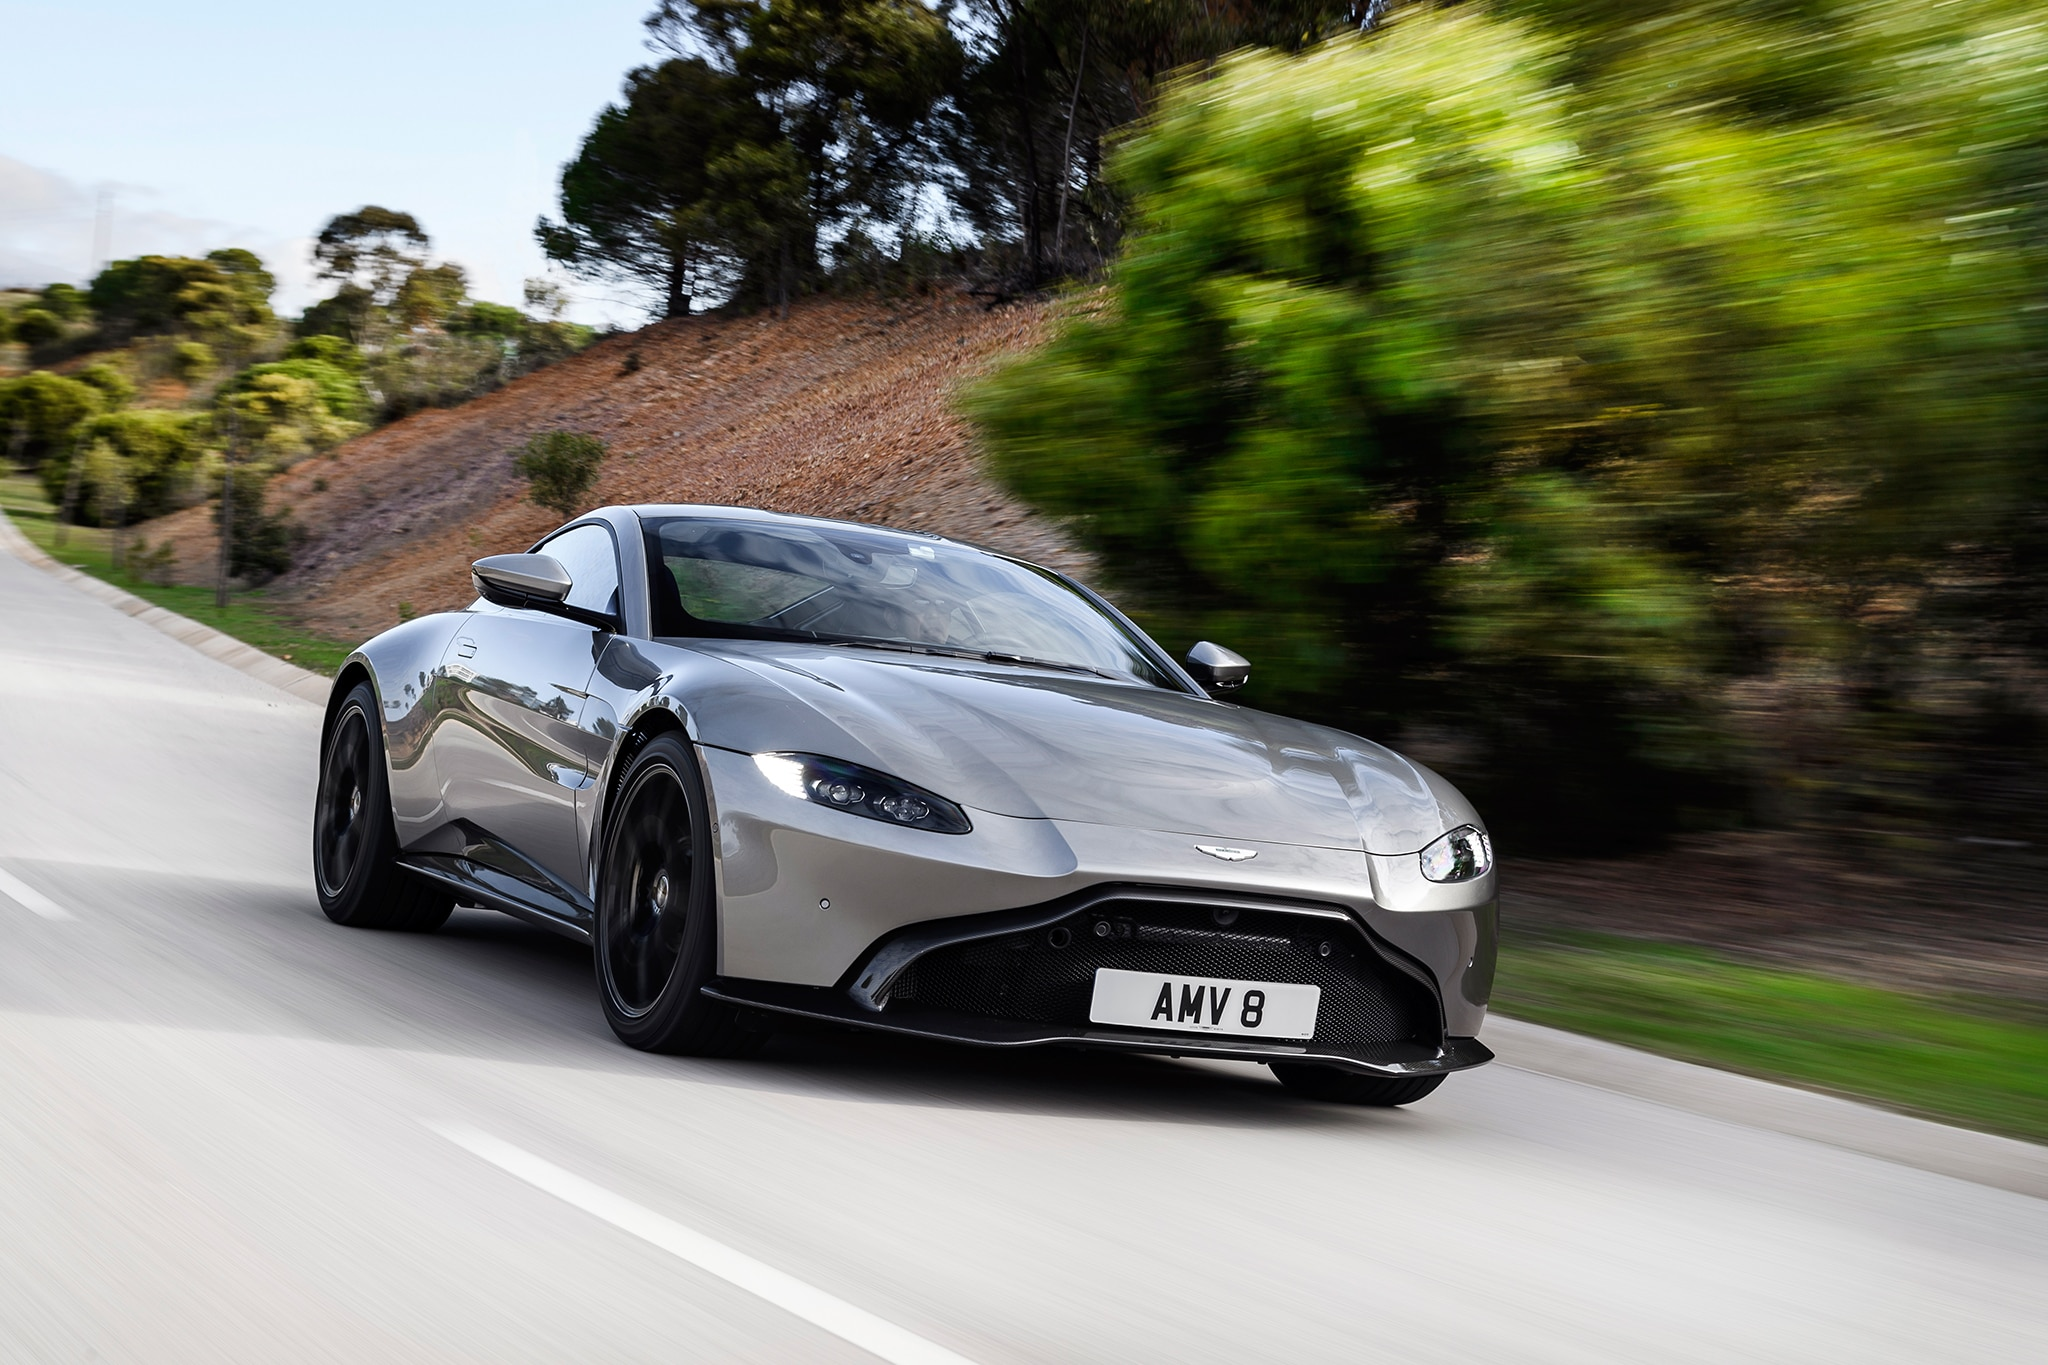 Watch 10 Reasons Why The 2019 Aston Martin Vantage Is The Hot New